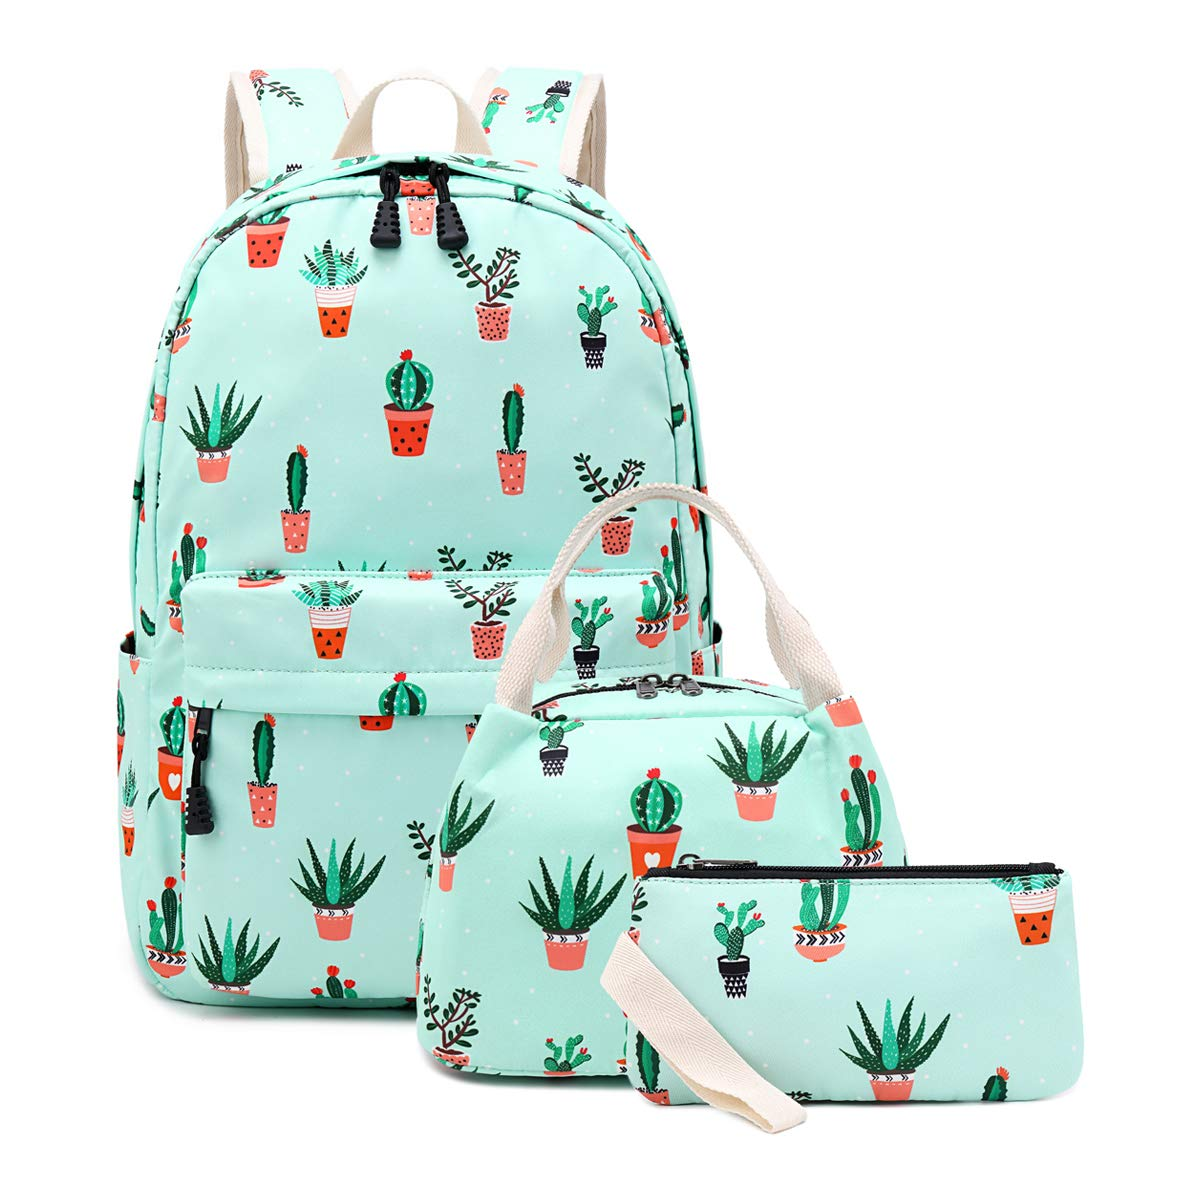 Girls School Backpack Teens Bookbag Kids Girls School Bags with Lunch Bag Pencil Case, 3 in 1 Backpack Sets (Light Blue/Cactus) by JIANYA